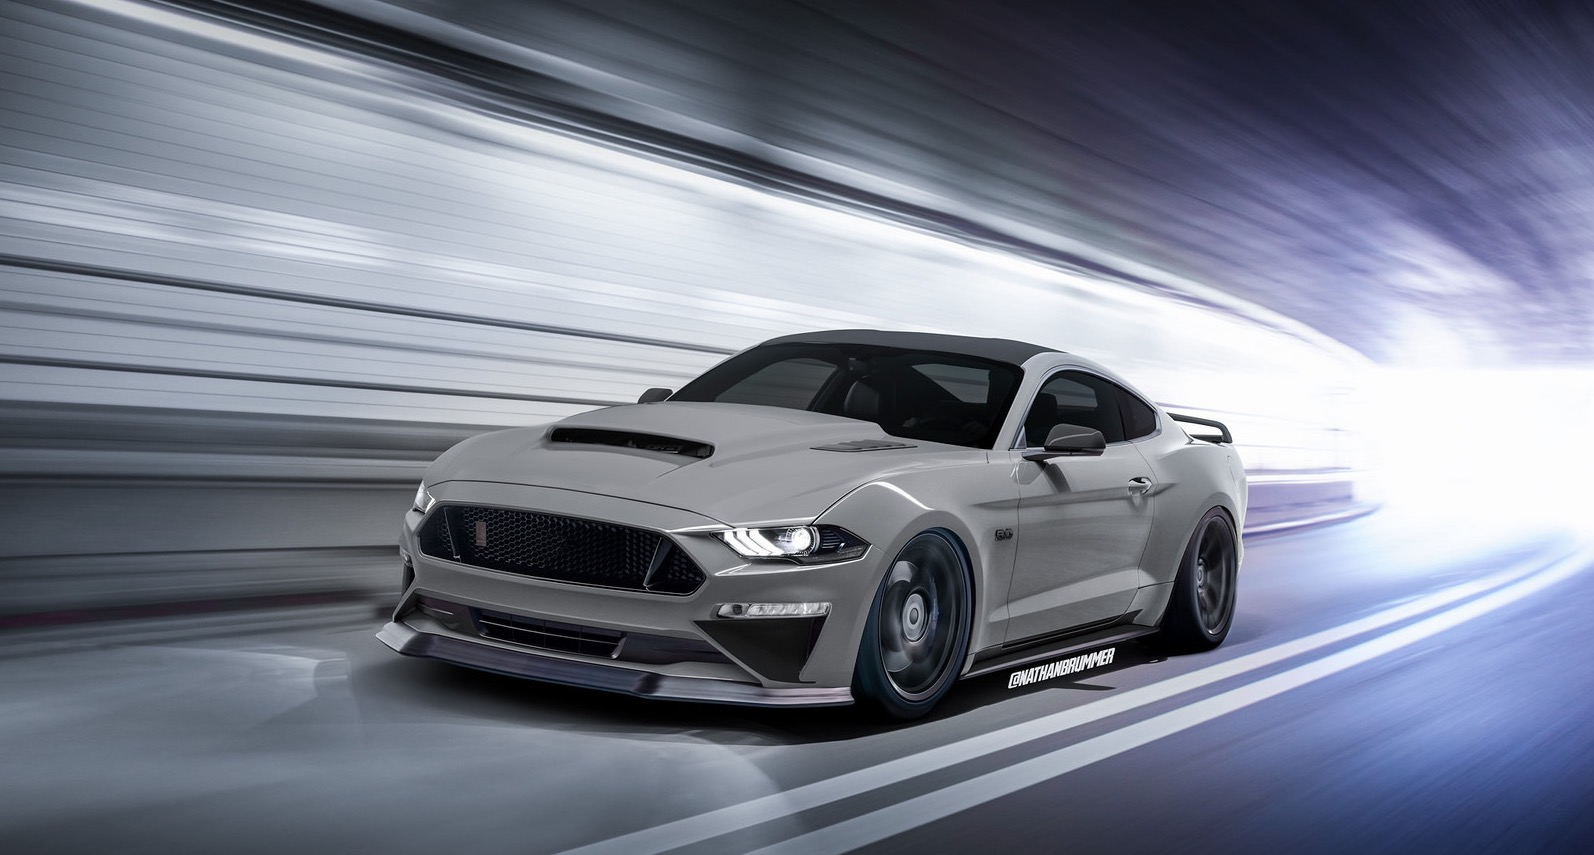 Ford Shelby Gt500 2019 >> What If the 2019 Shelby GT500 Mustang Looked Like This? - autoevolution